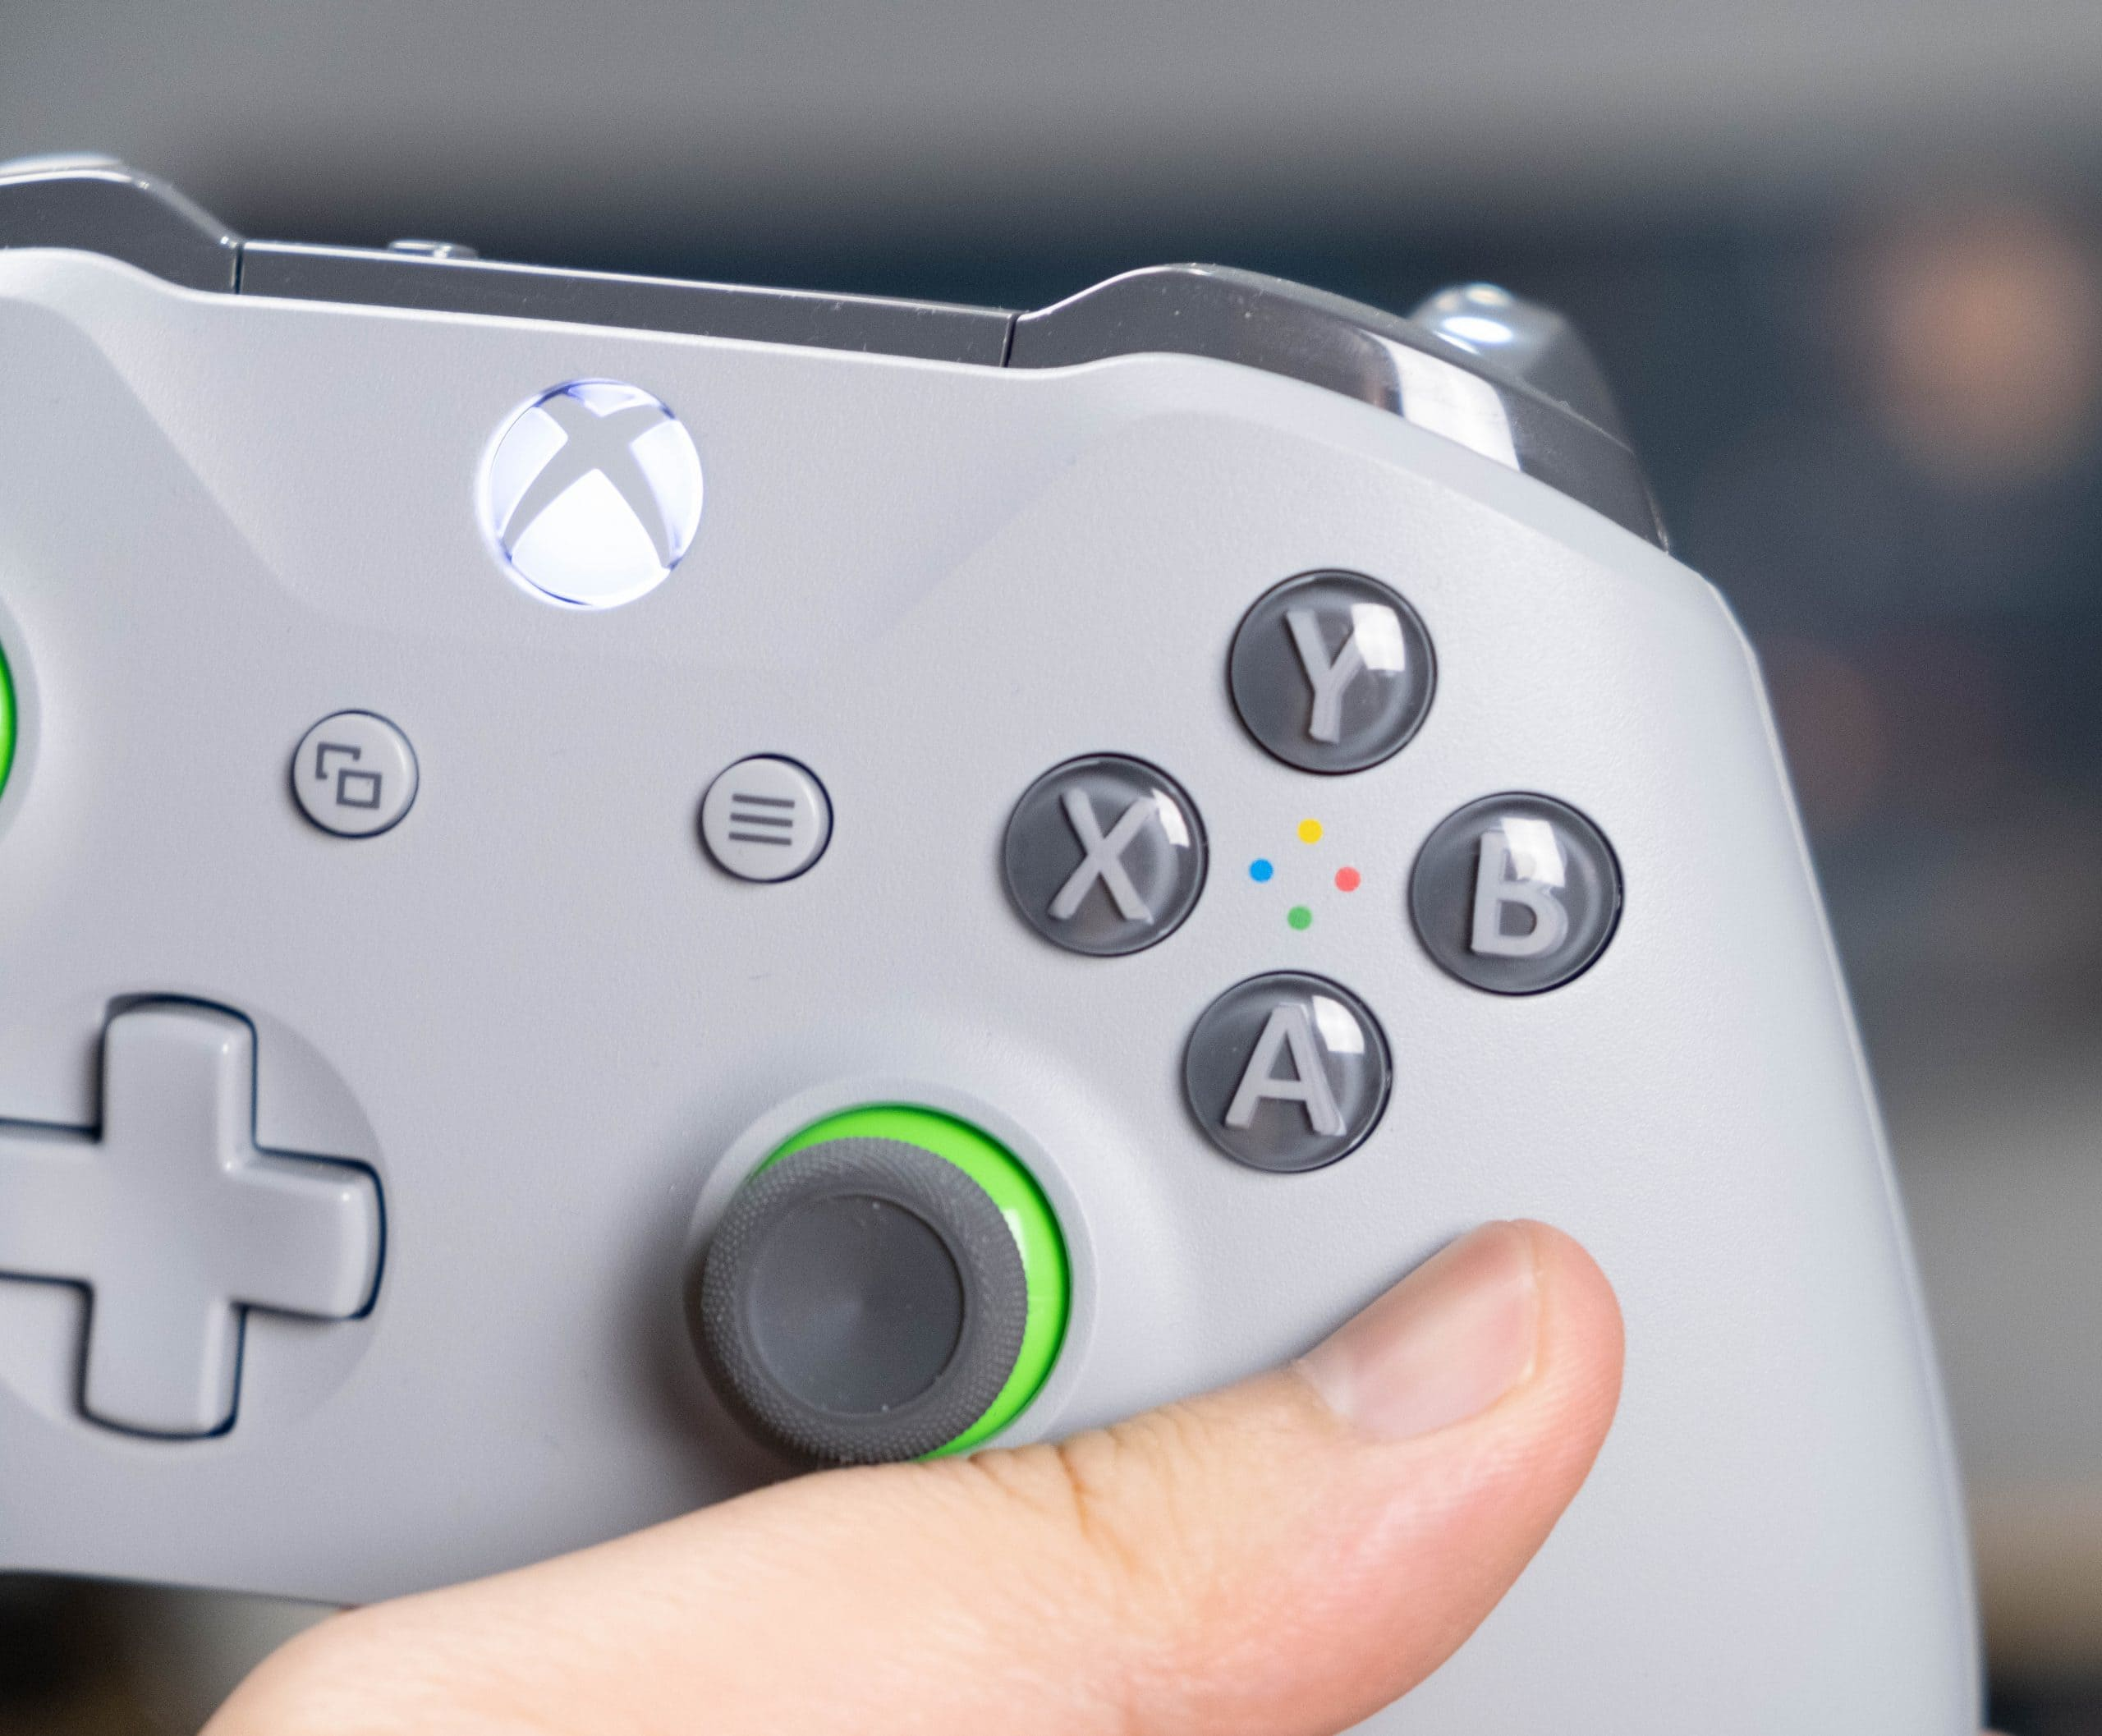 XBox One X - Buttons